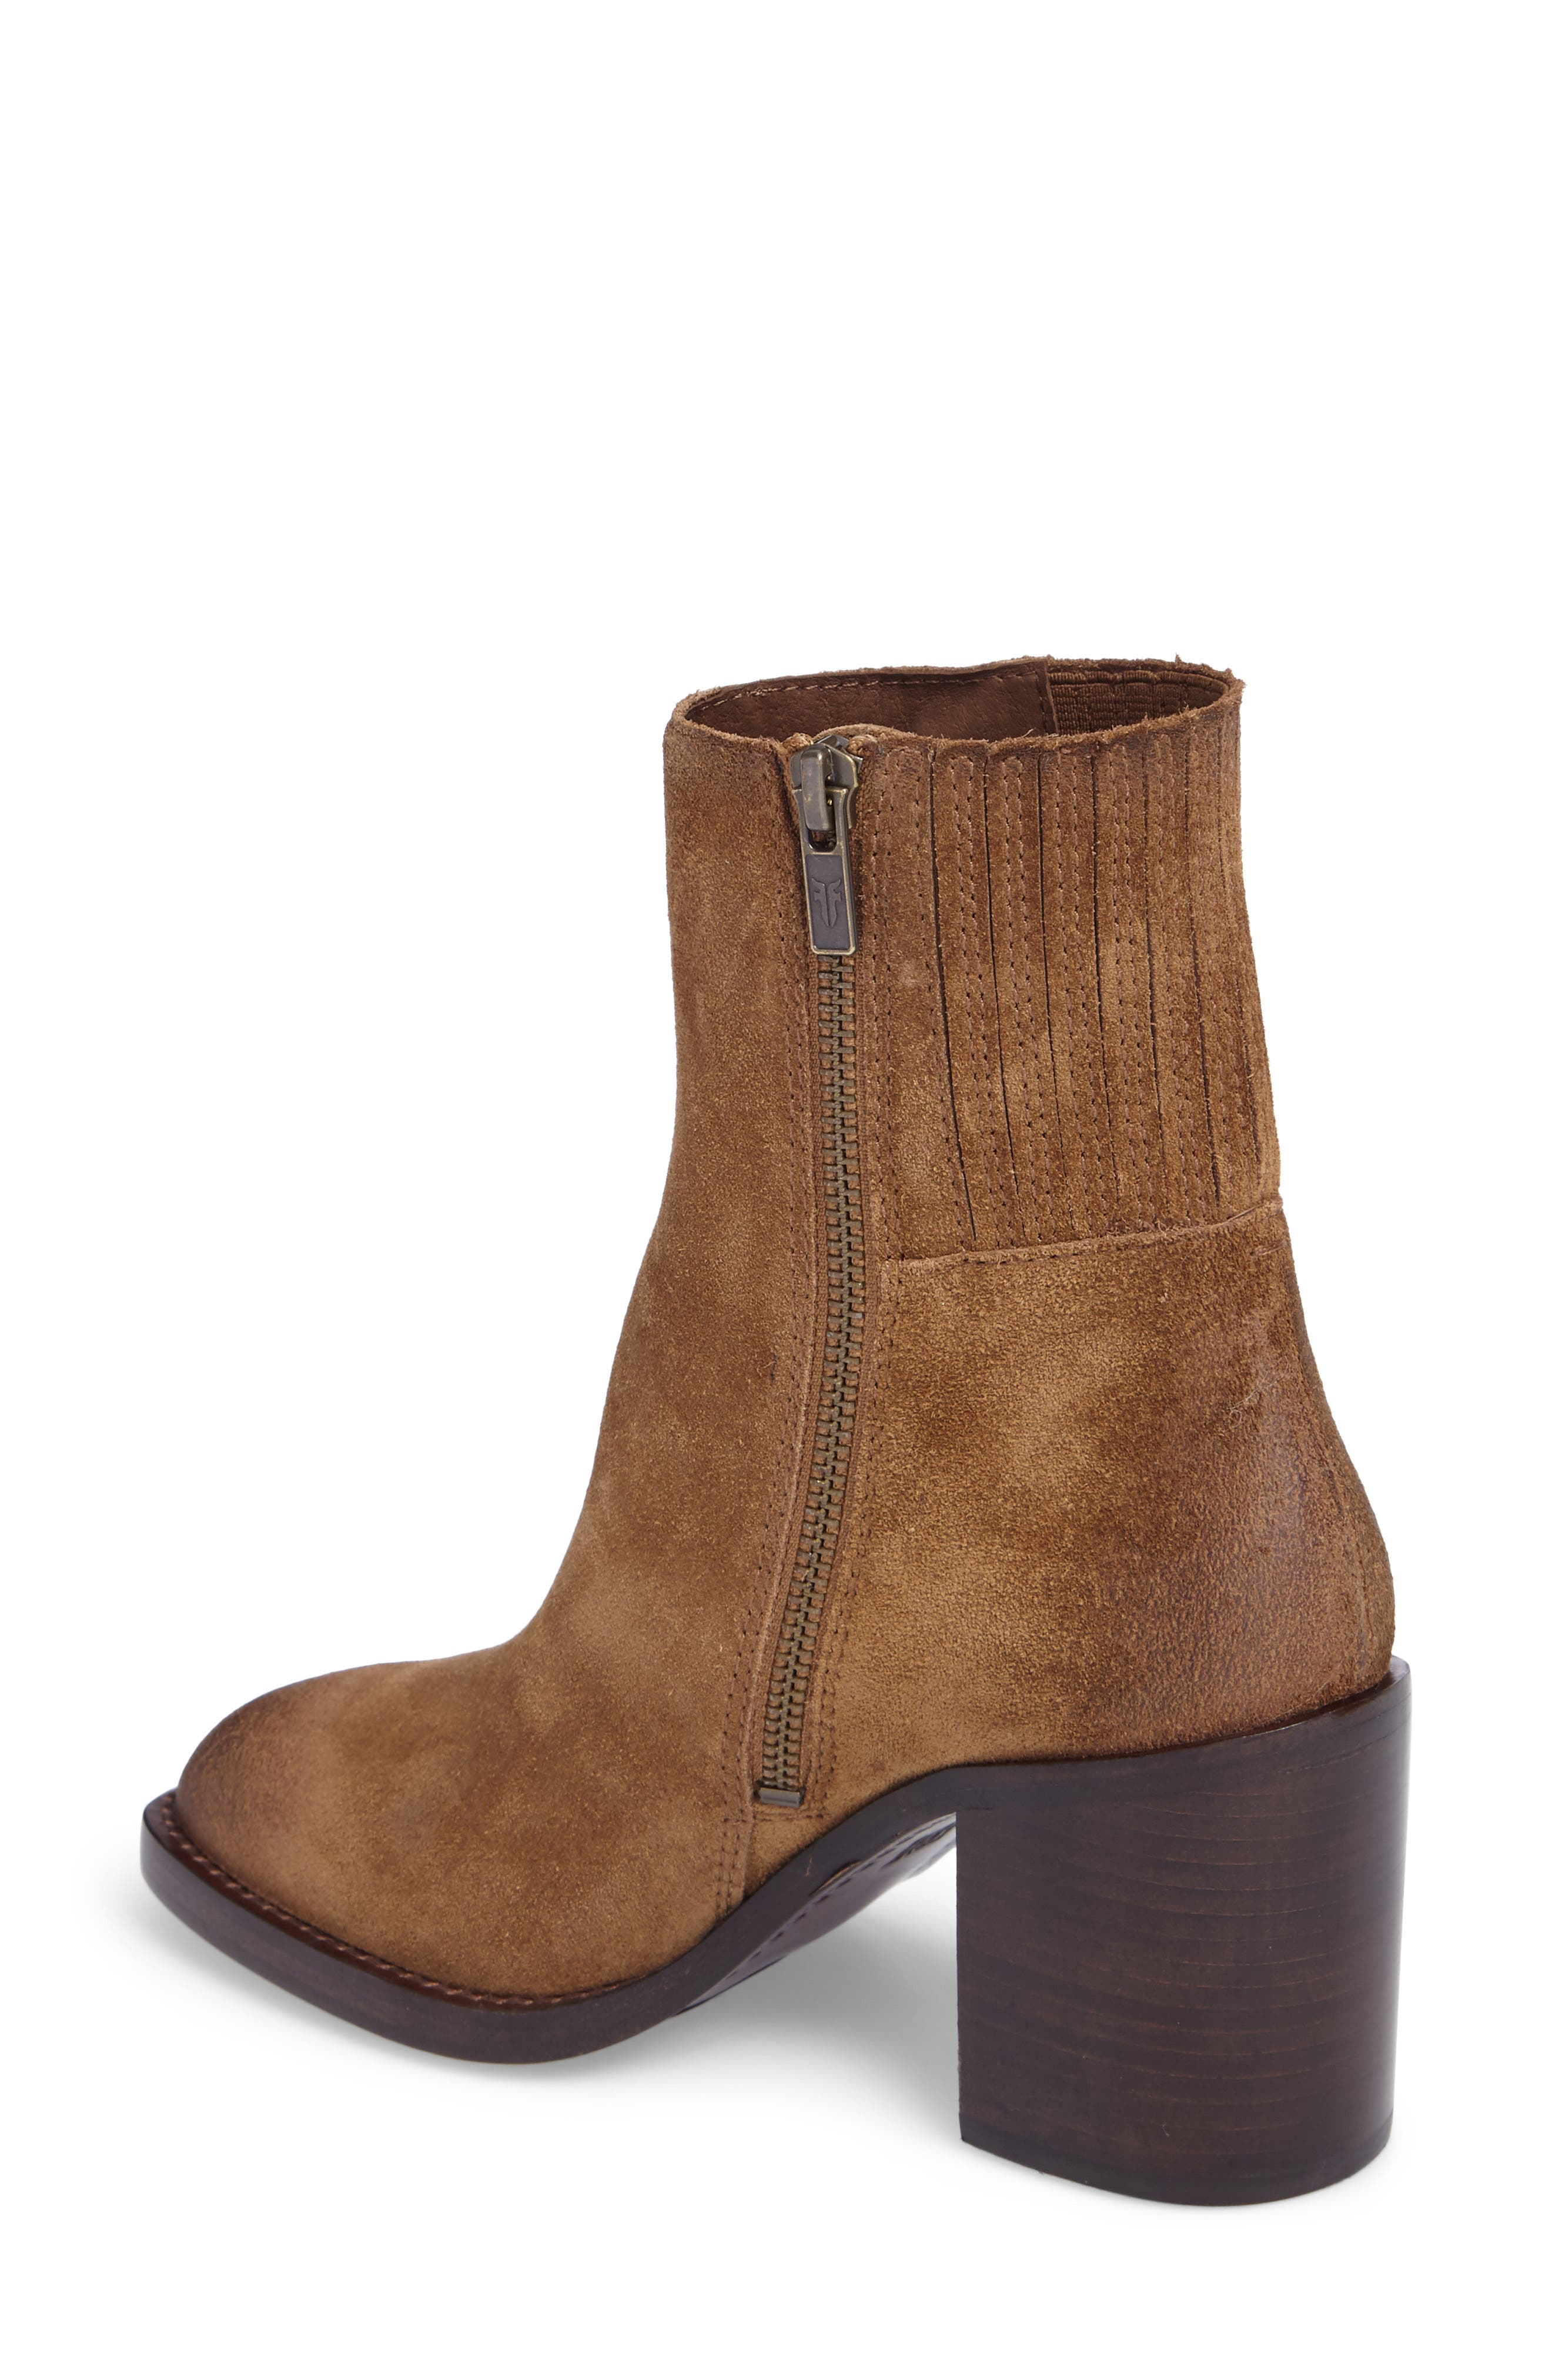 Pia Boot,                             Alternate thumbnail 2, color,                             Chestnut Suede